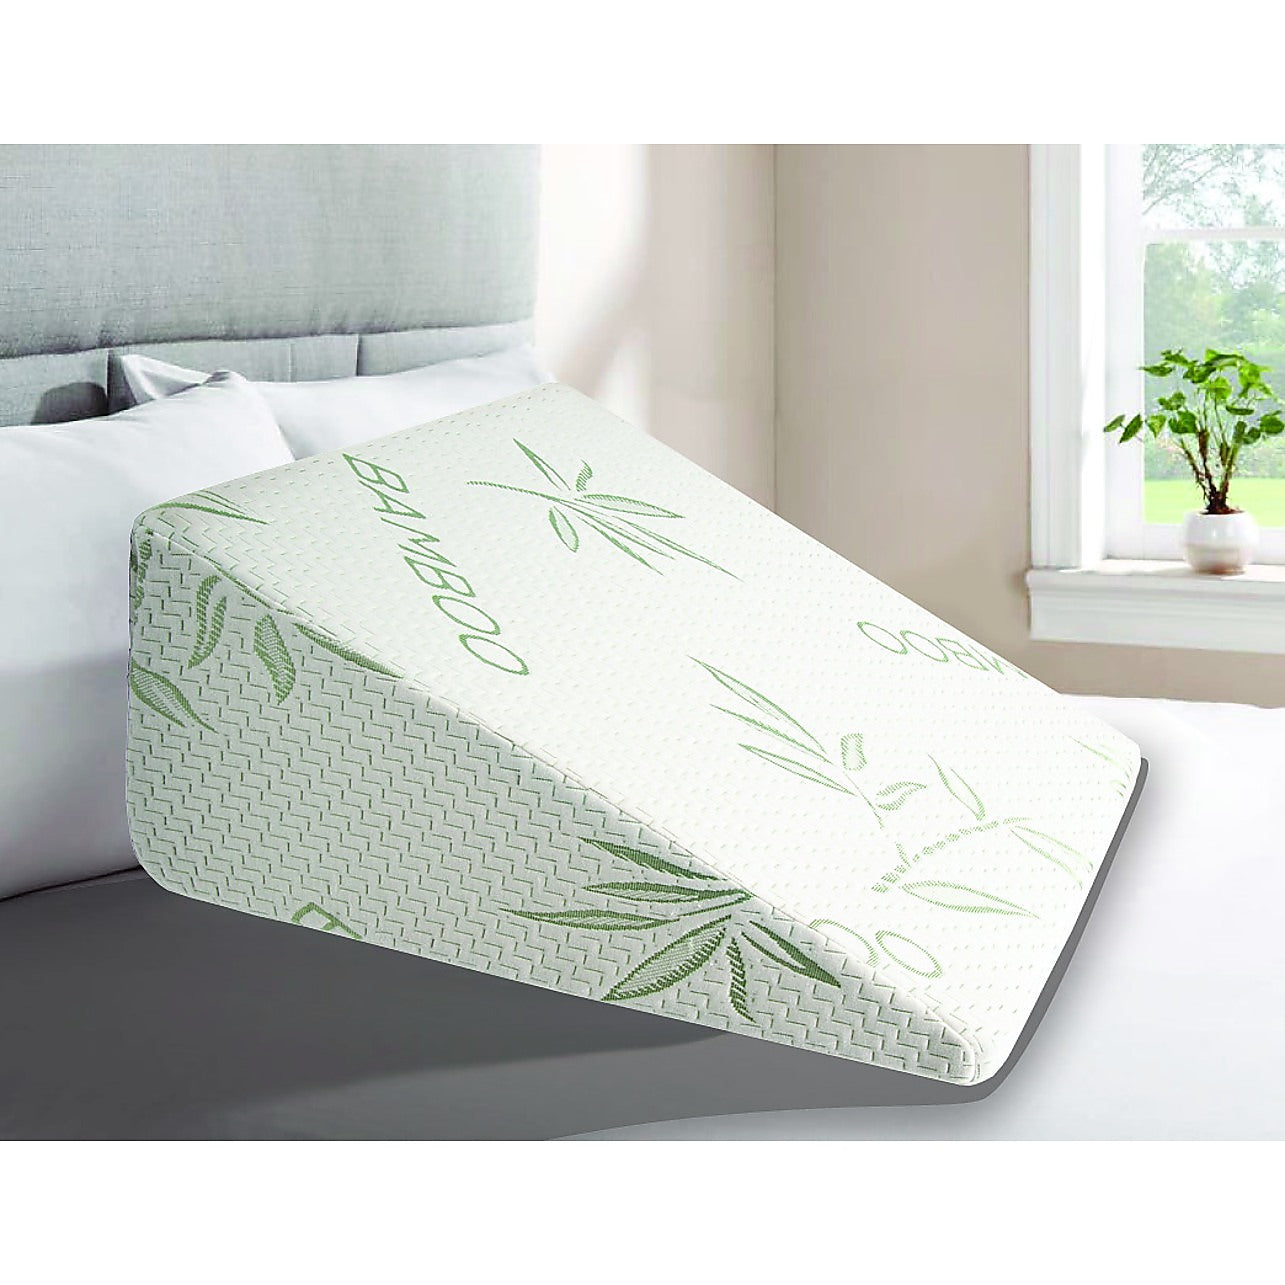 Cool Gel Memory Foam Bed Wedge Pillow Cushion Neck Back Support Sleep With Cover Home Lifestyle Manchester